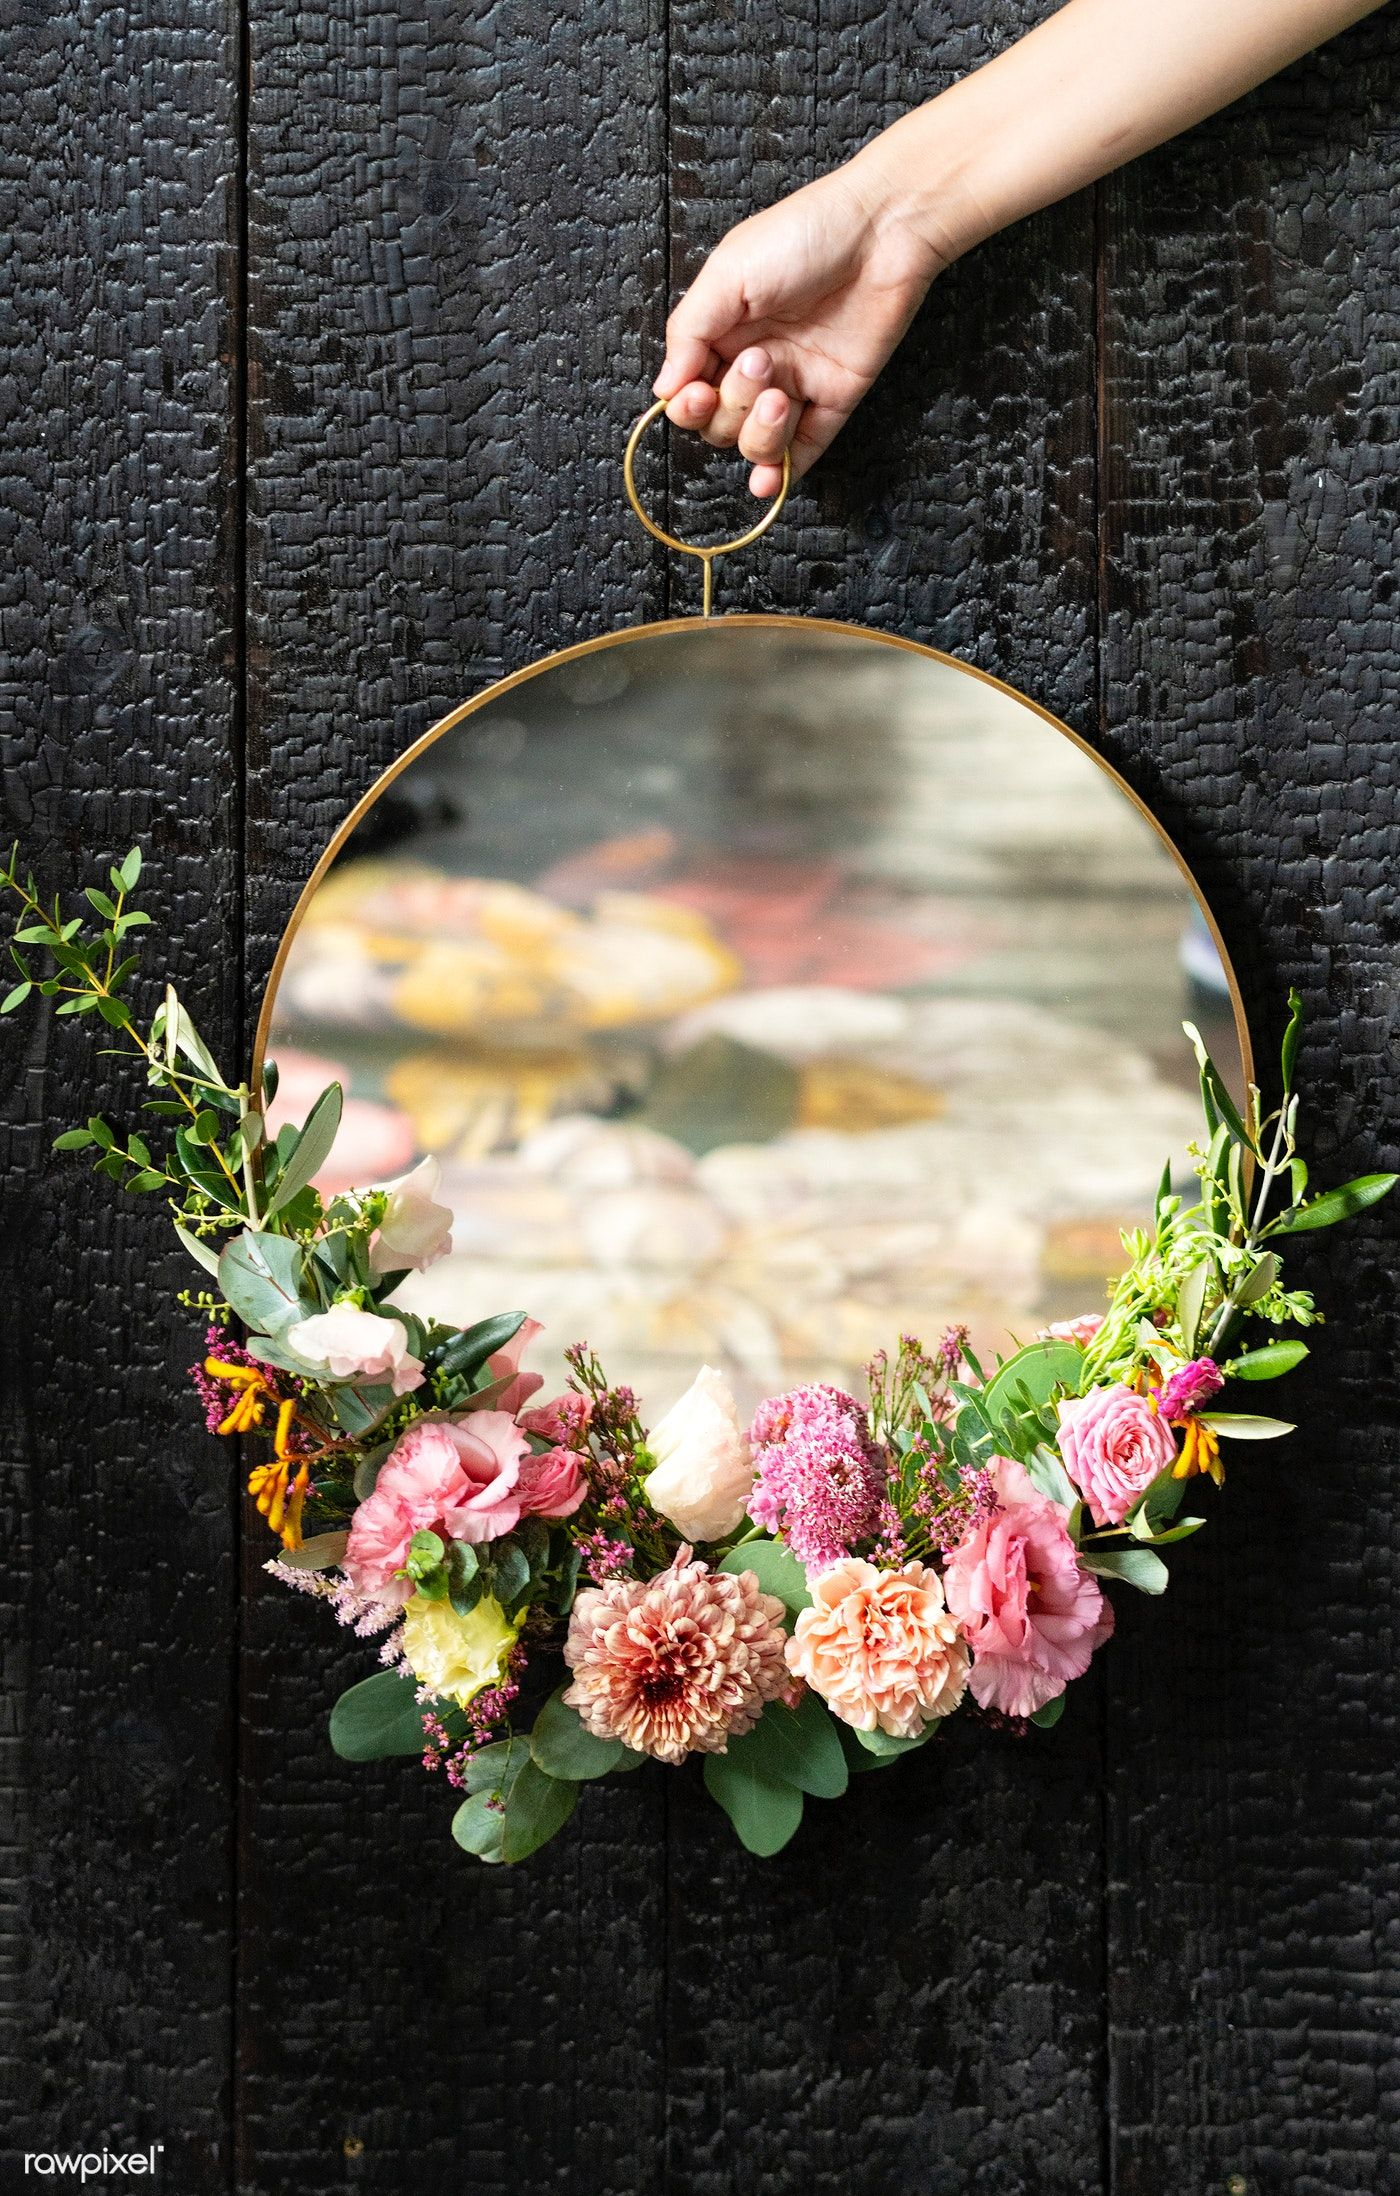 Cute Round Mirror Decorated With Flowers Premium Image By Rawpixel Com Teddy Rawpixel Floral Mirror Frame Flower Mirror Frame Floral Mirror